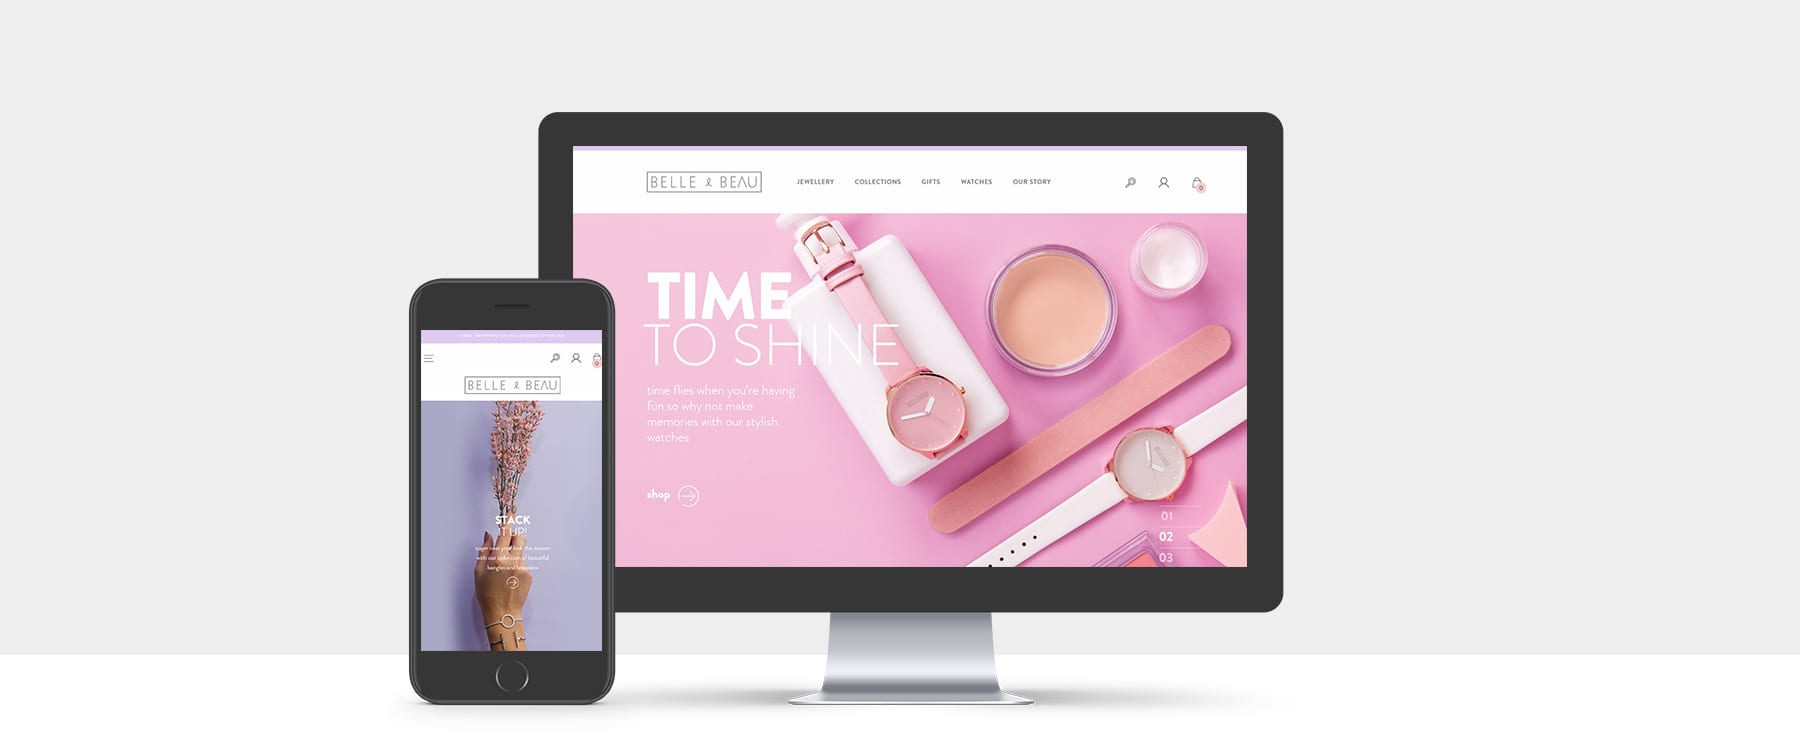 Introducing Belle & Beau's Vibrant New eCommerce Website Image